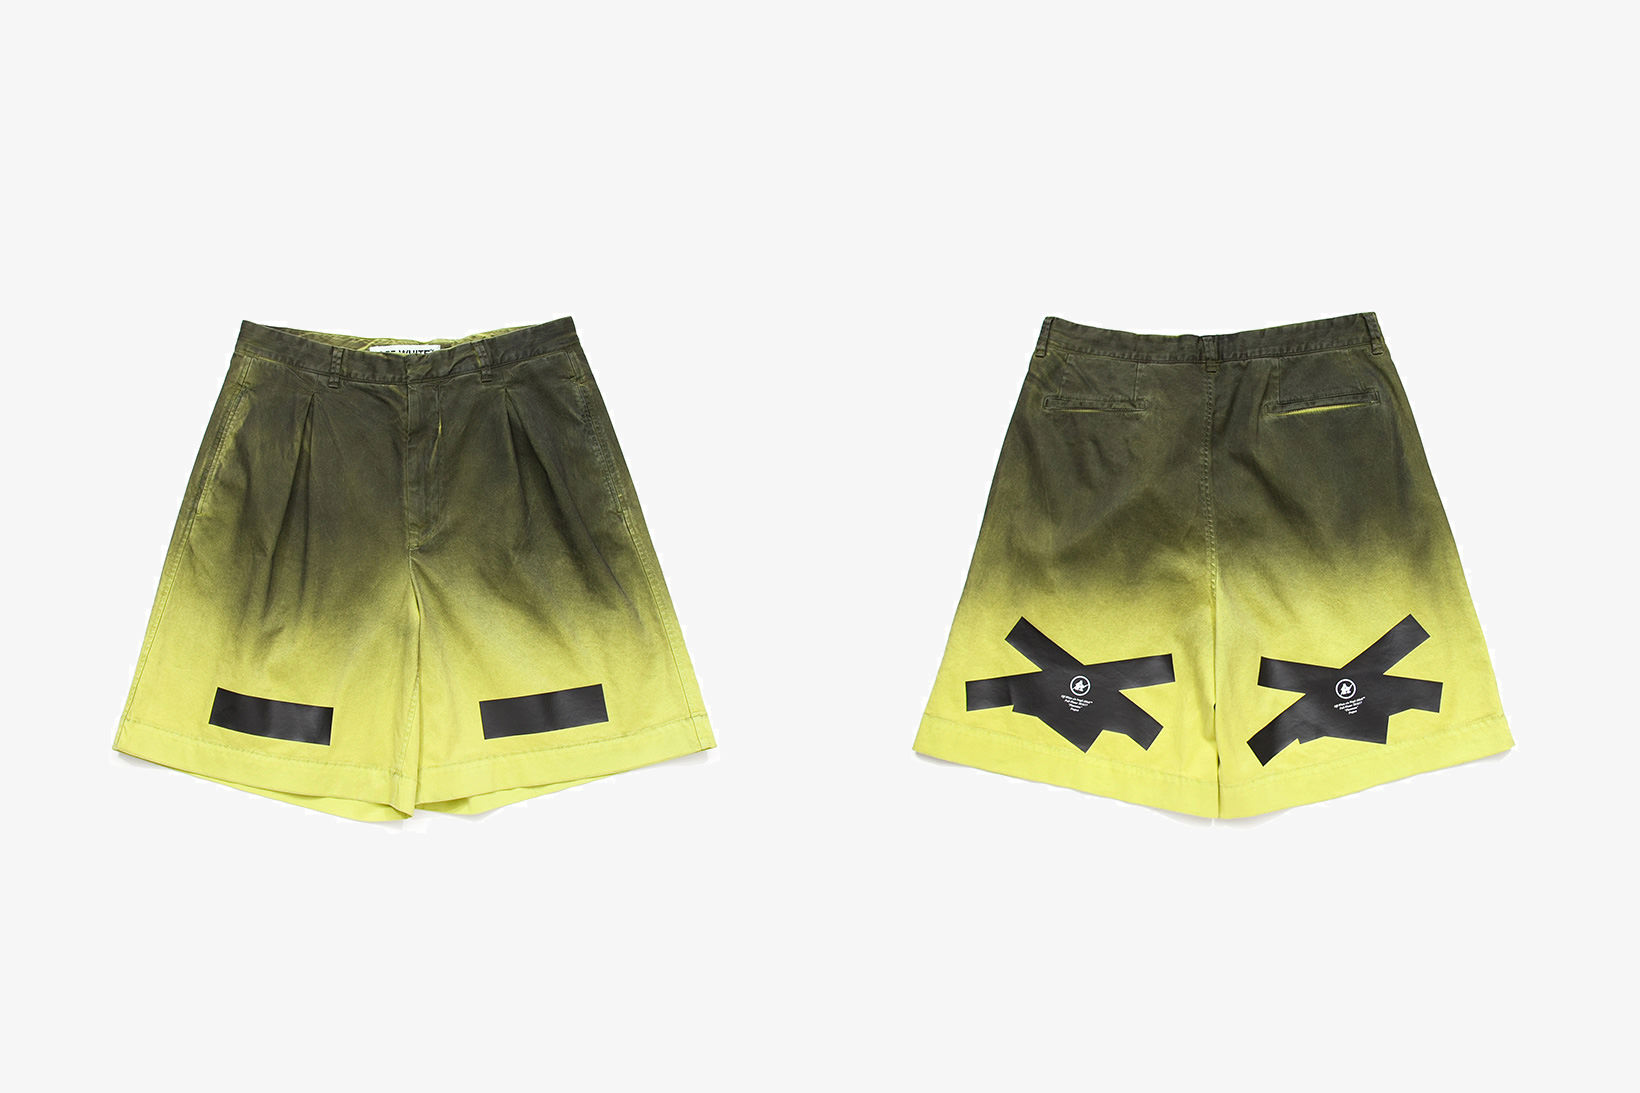 57f6f7d17bacb62b75a0a341_off-white-fragment-design-fluo-04